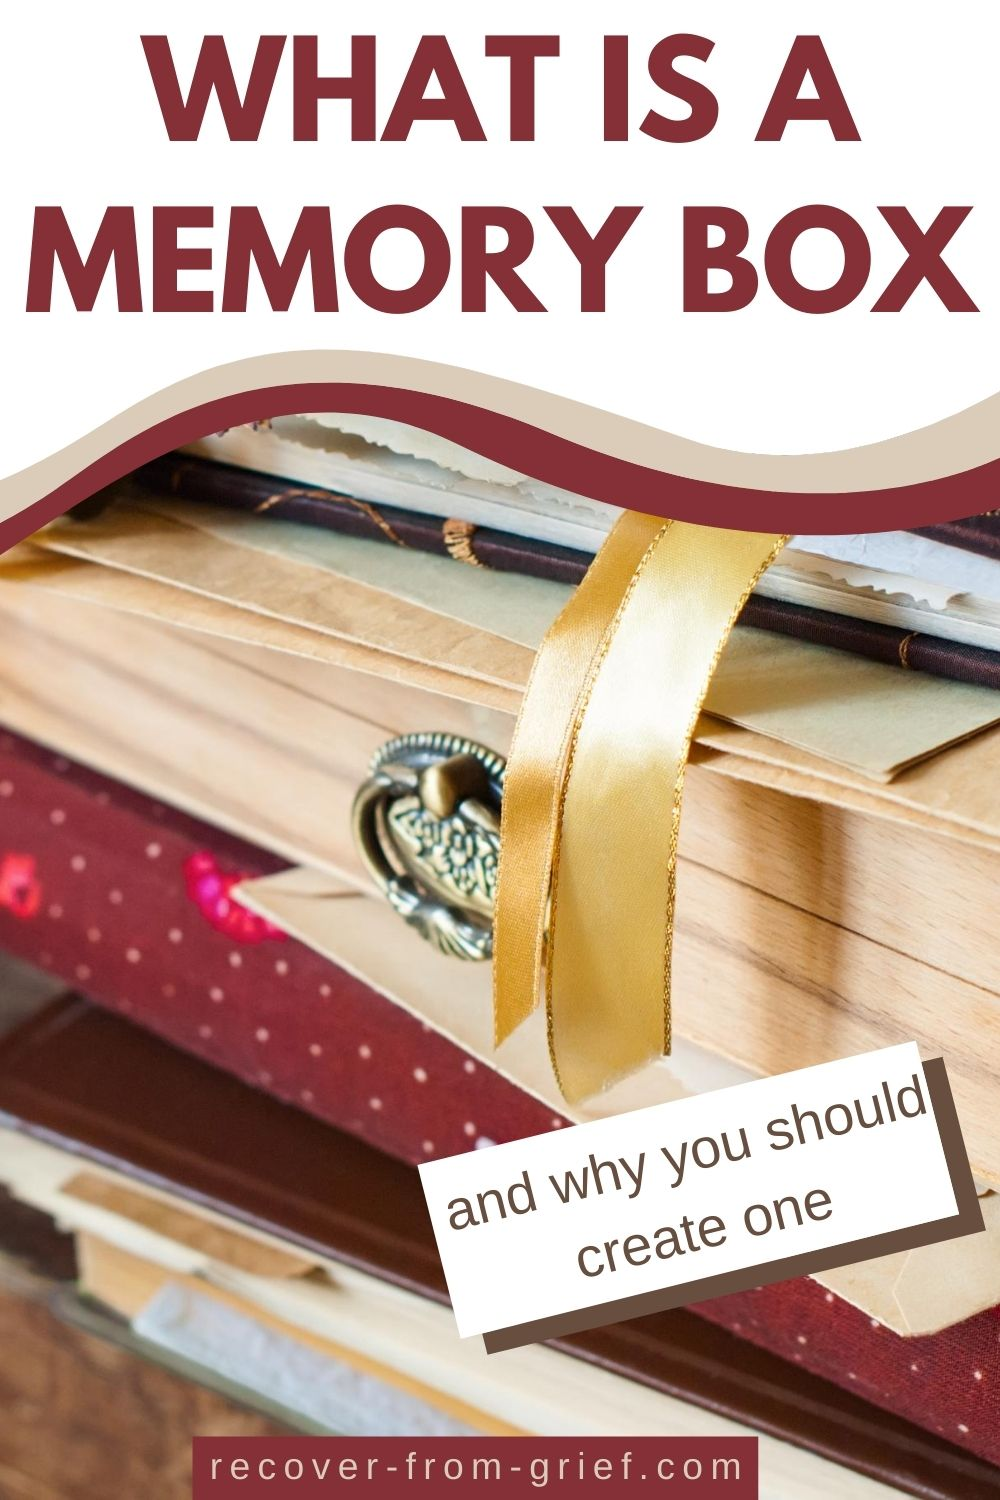 What is a memory box and why you should create one - Pinterest image